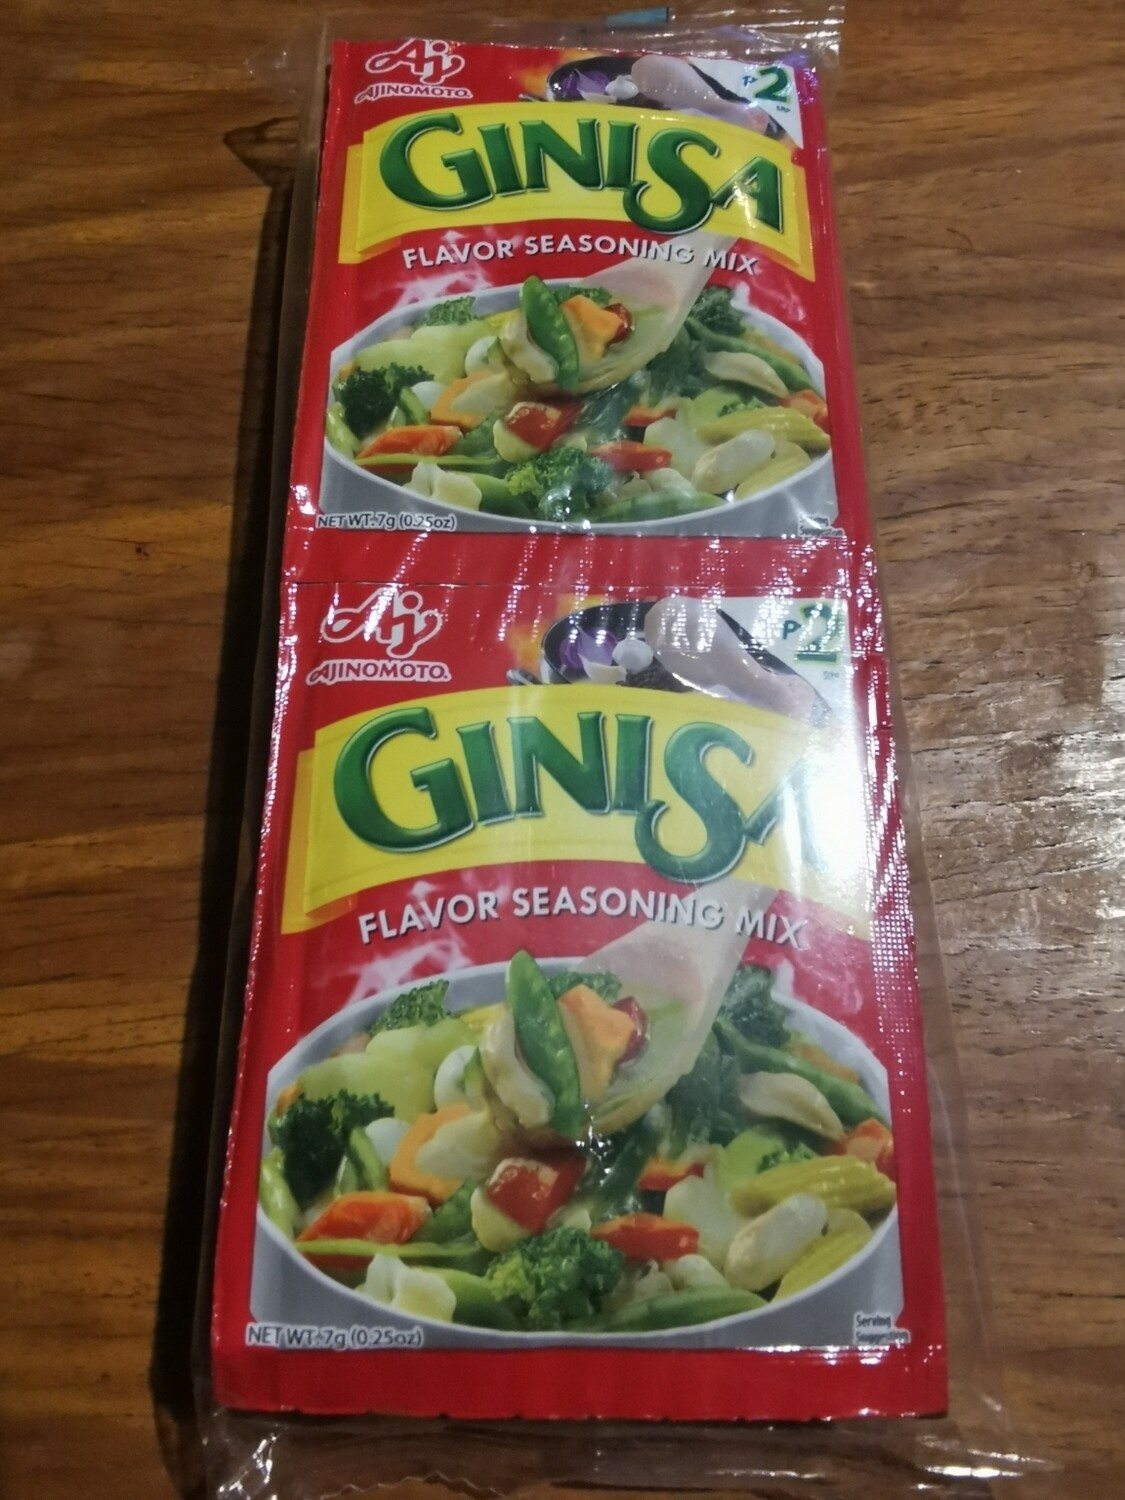 Ginisa Flavor Seasoning Mix (7g x 16packs)